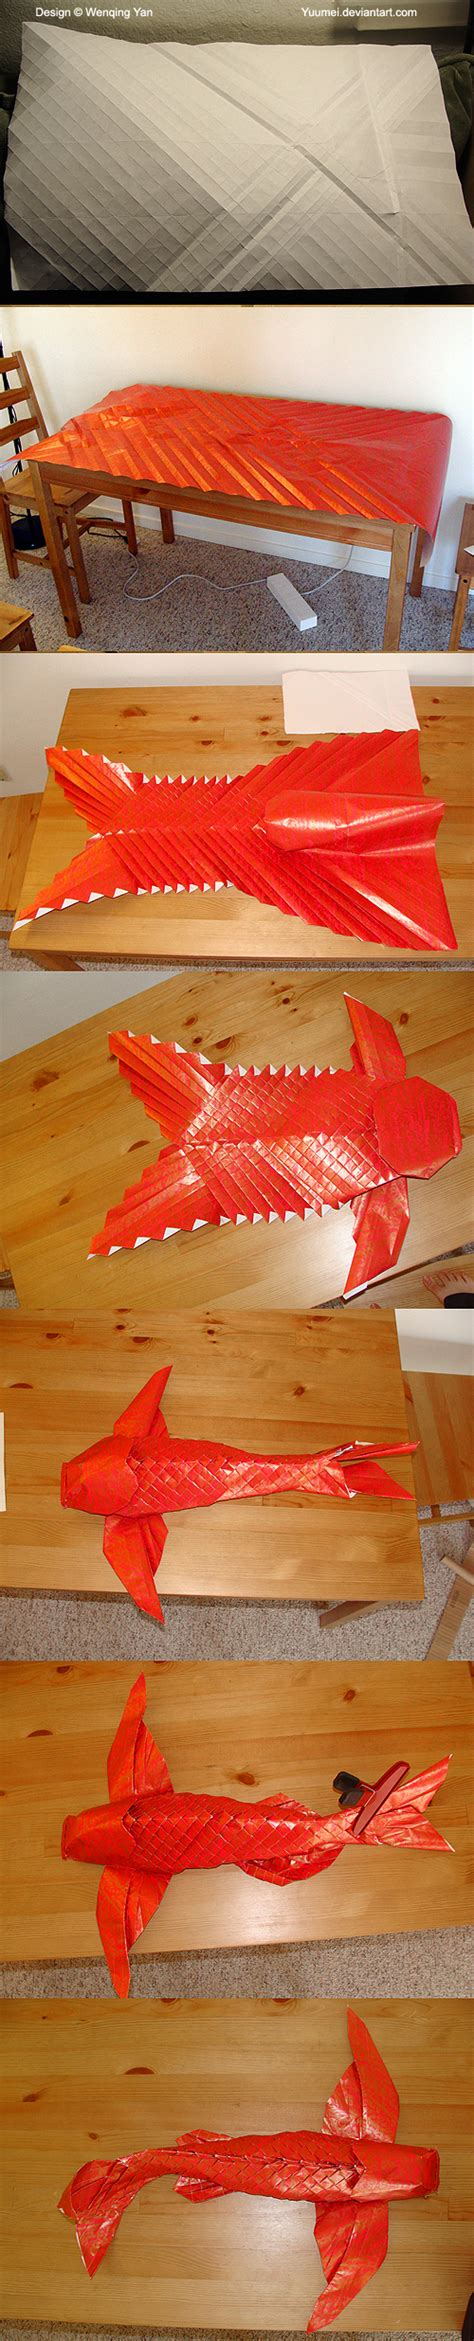 how to make an origami koi fish step by step origami winged koi process by yuumei on deviantart